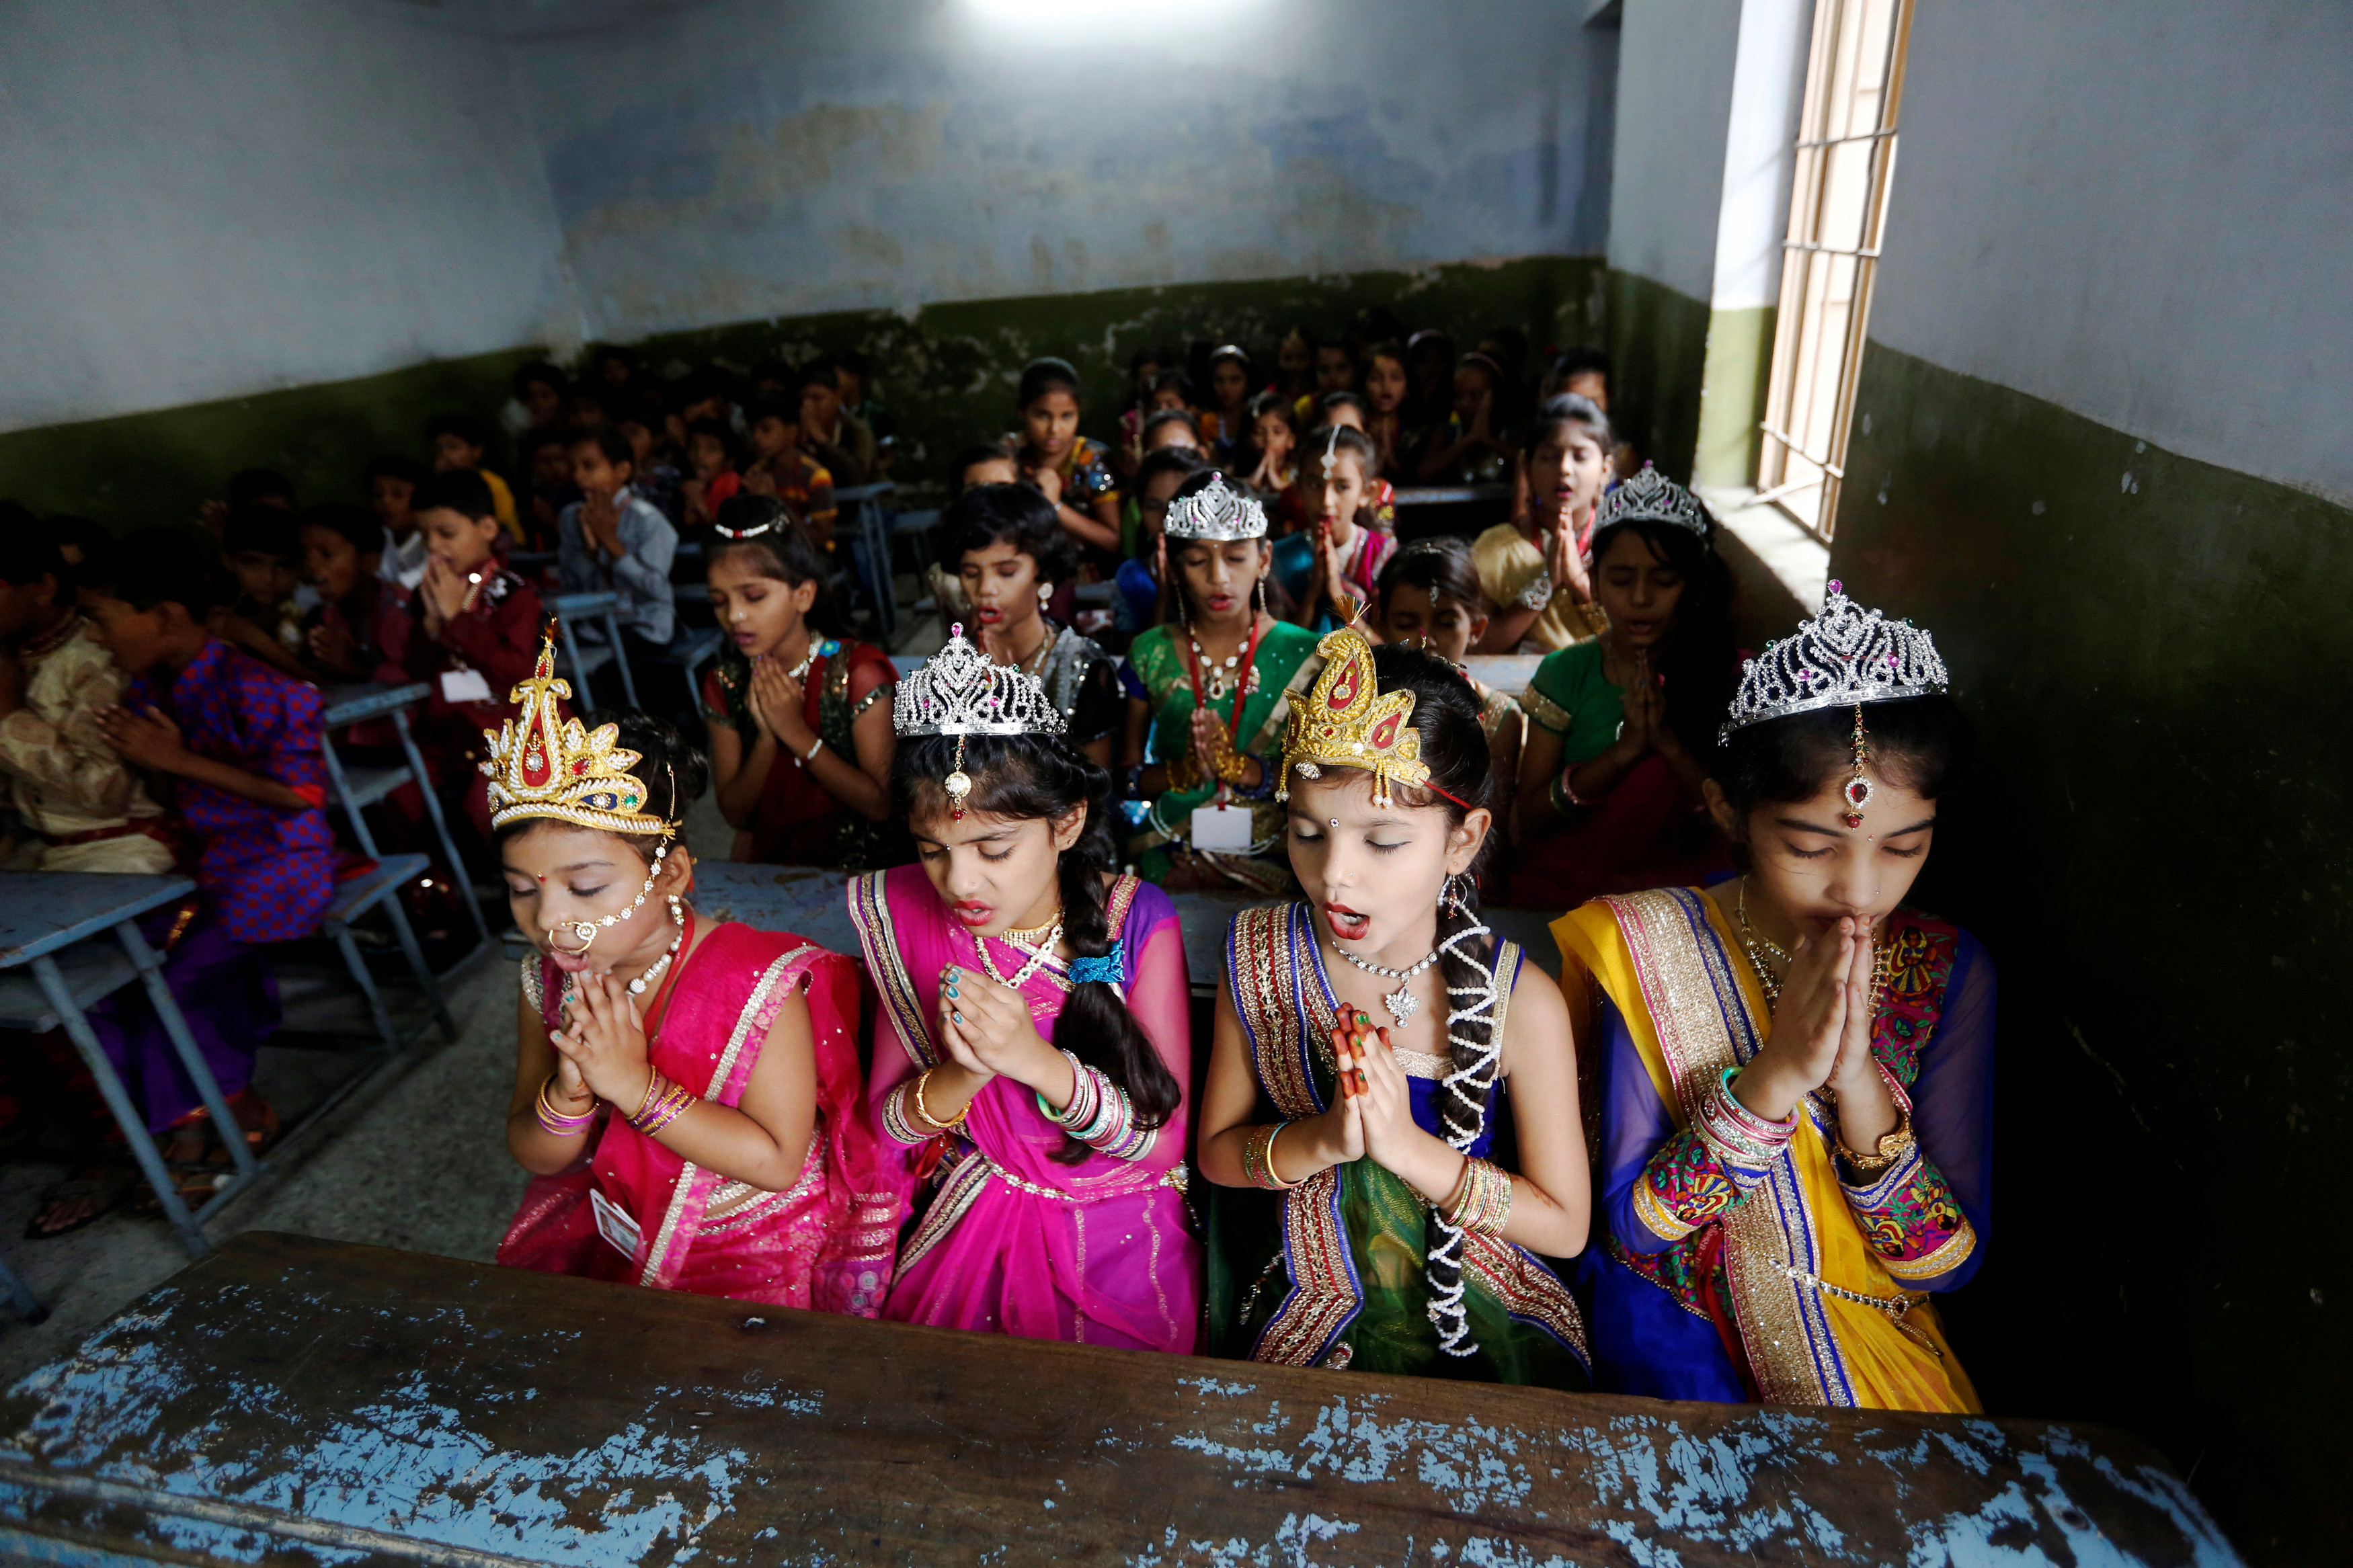 School pupils dressed up as Radha, consort of Krishna, in Ahmedabad, India.